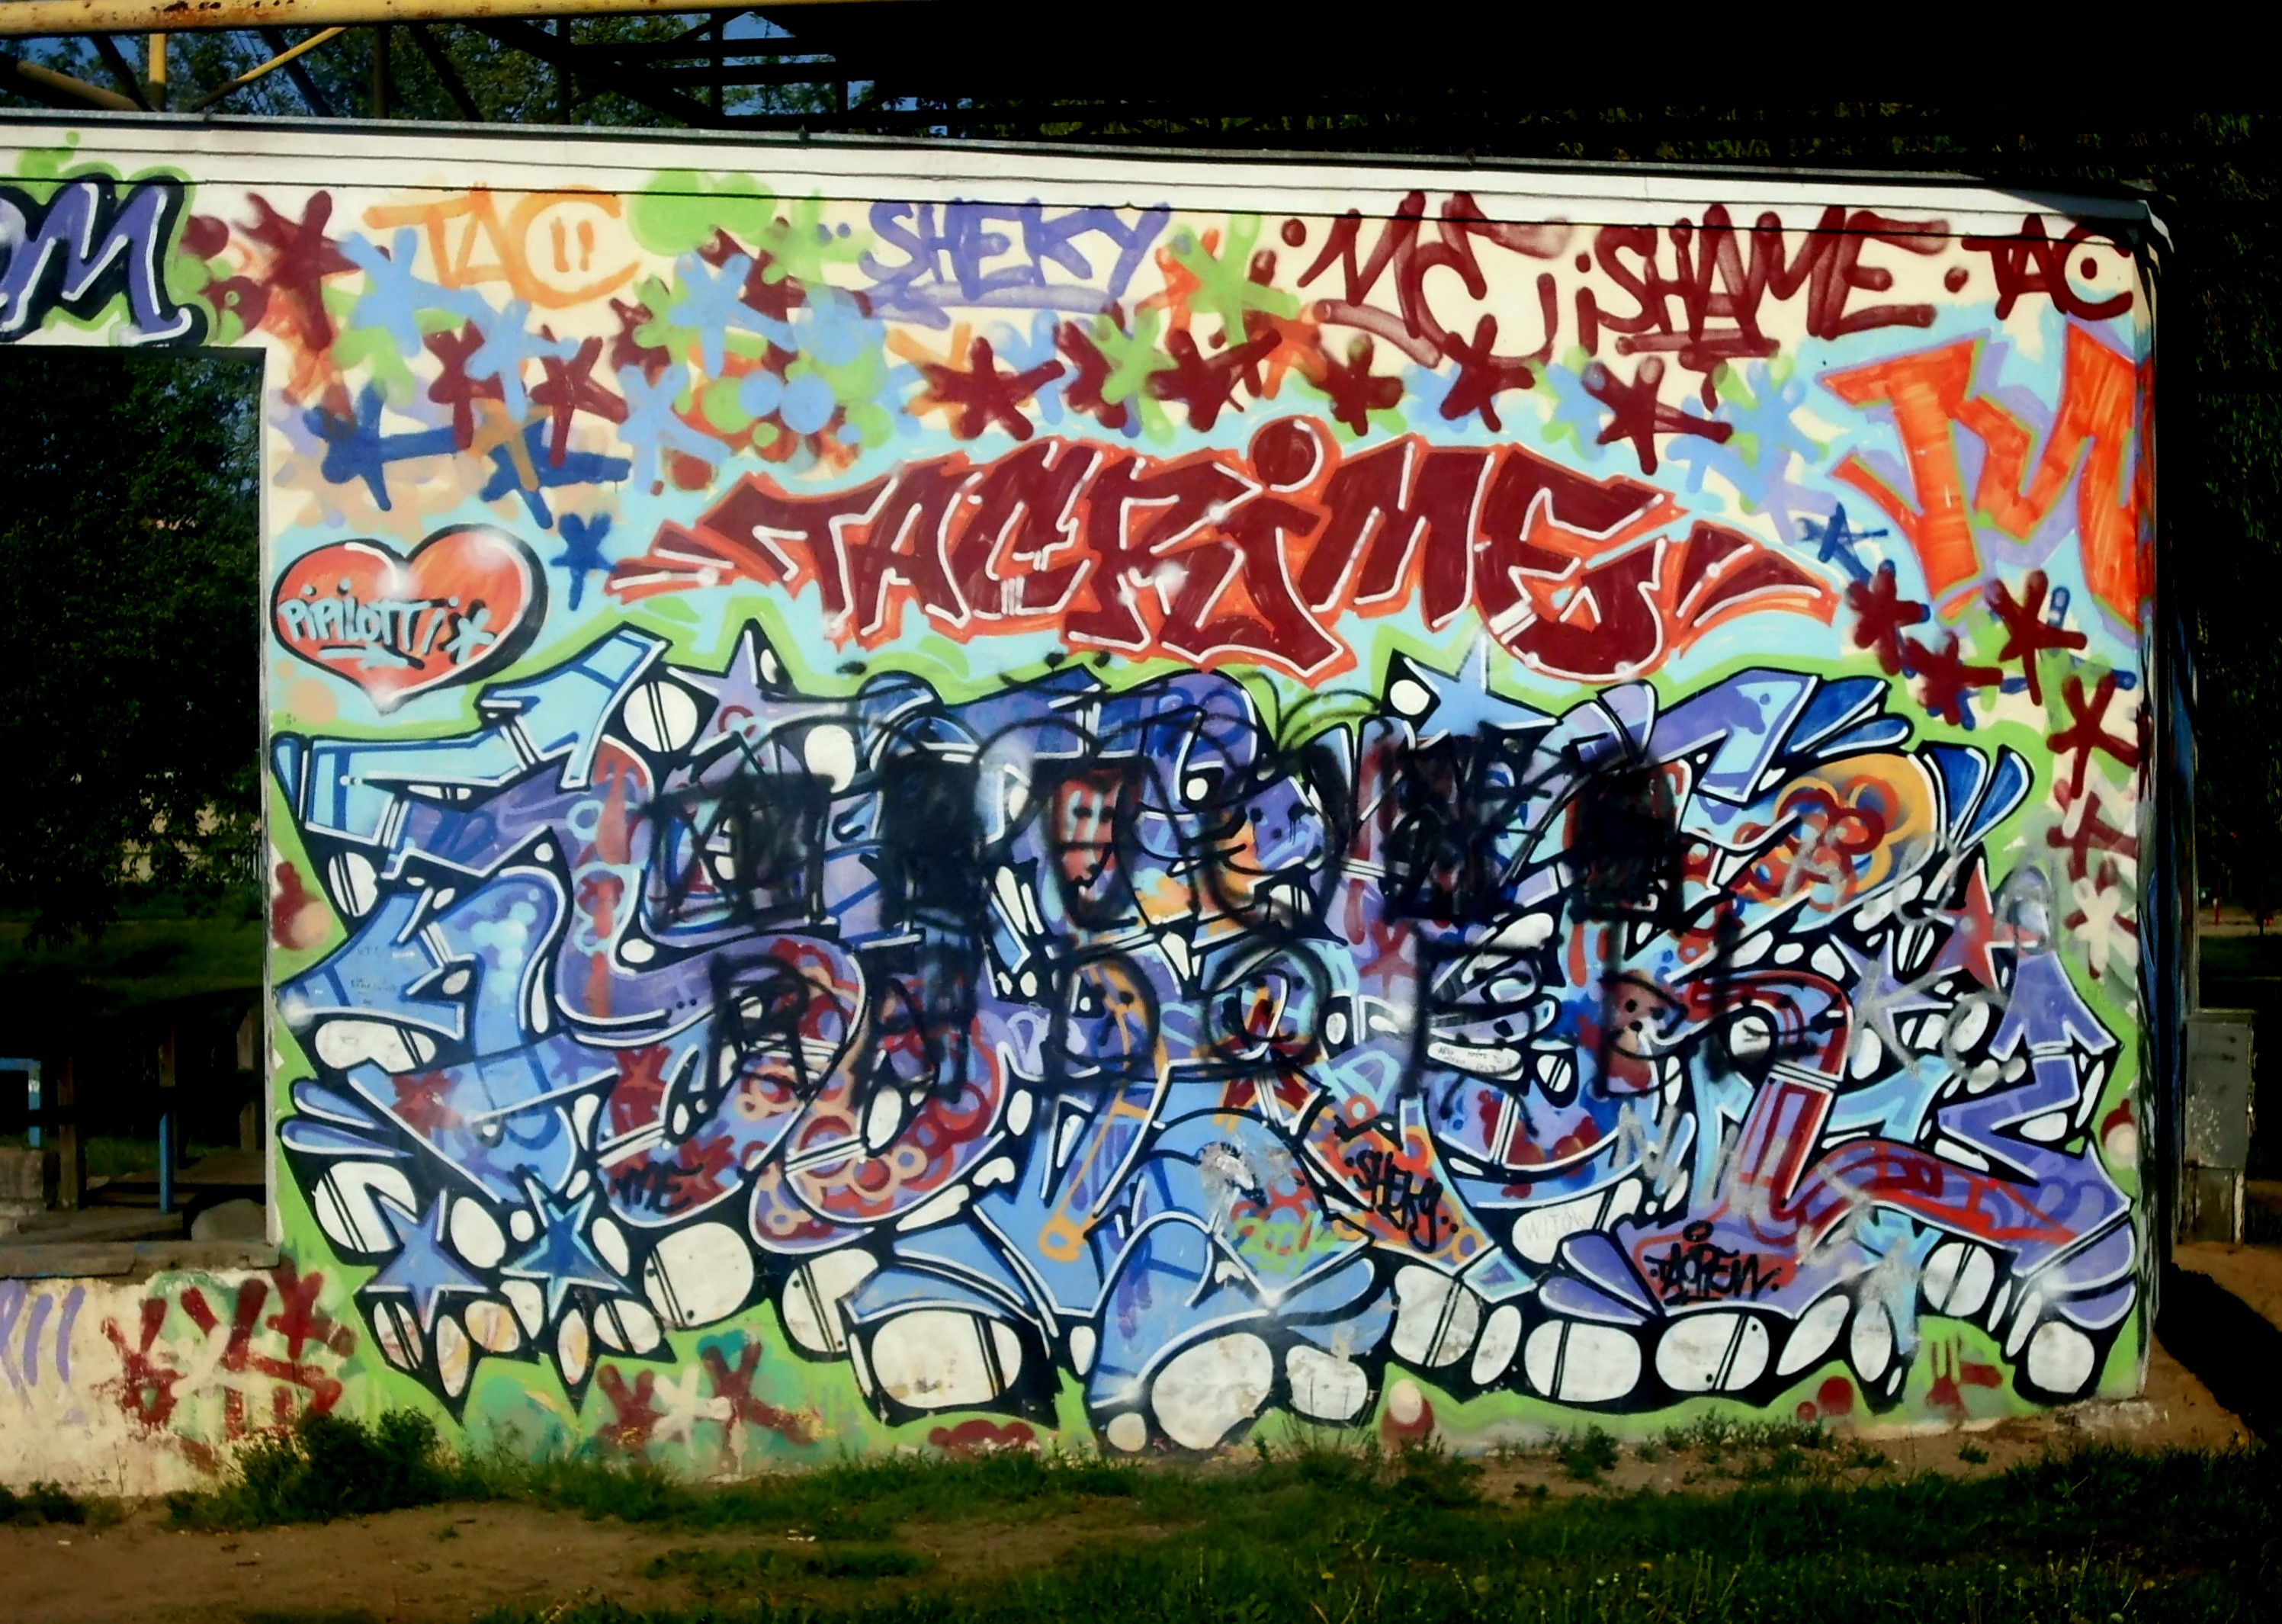 File:Graffiti at city park in Gdynia-Obluze 6.jpg - Wikimedia Commons